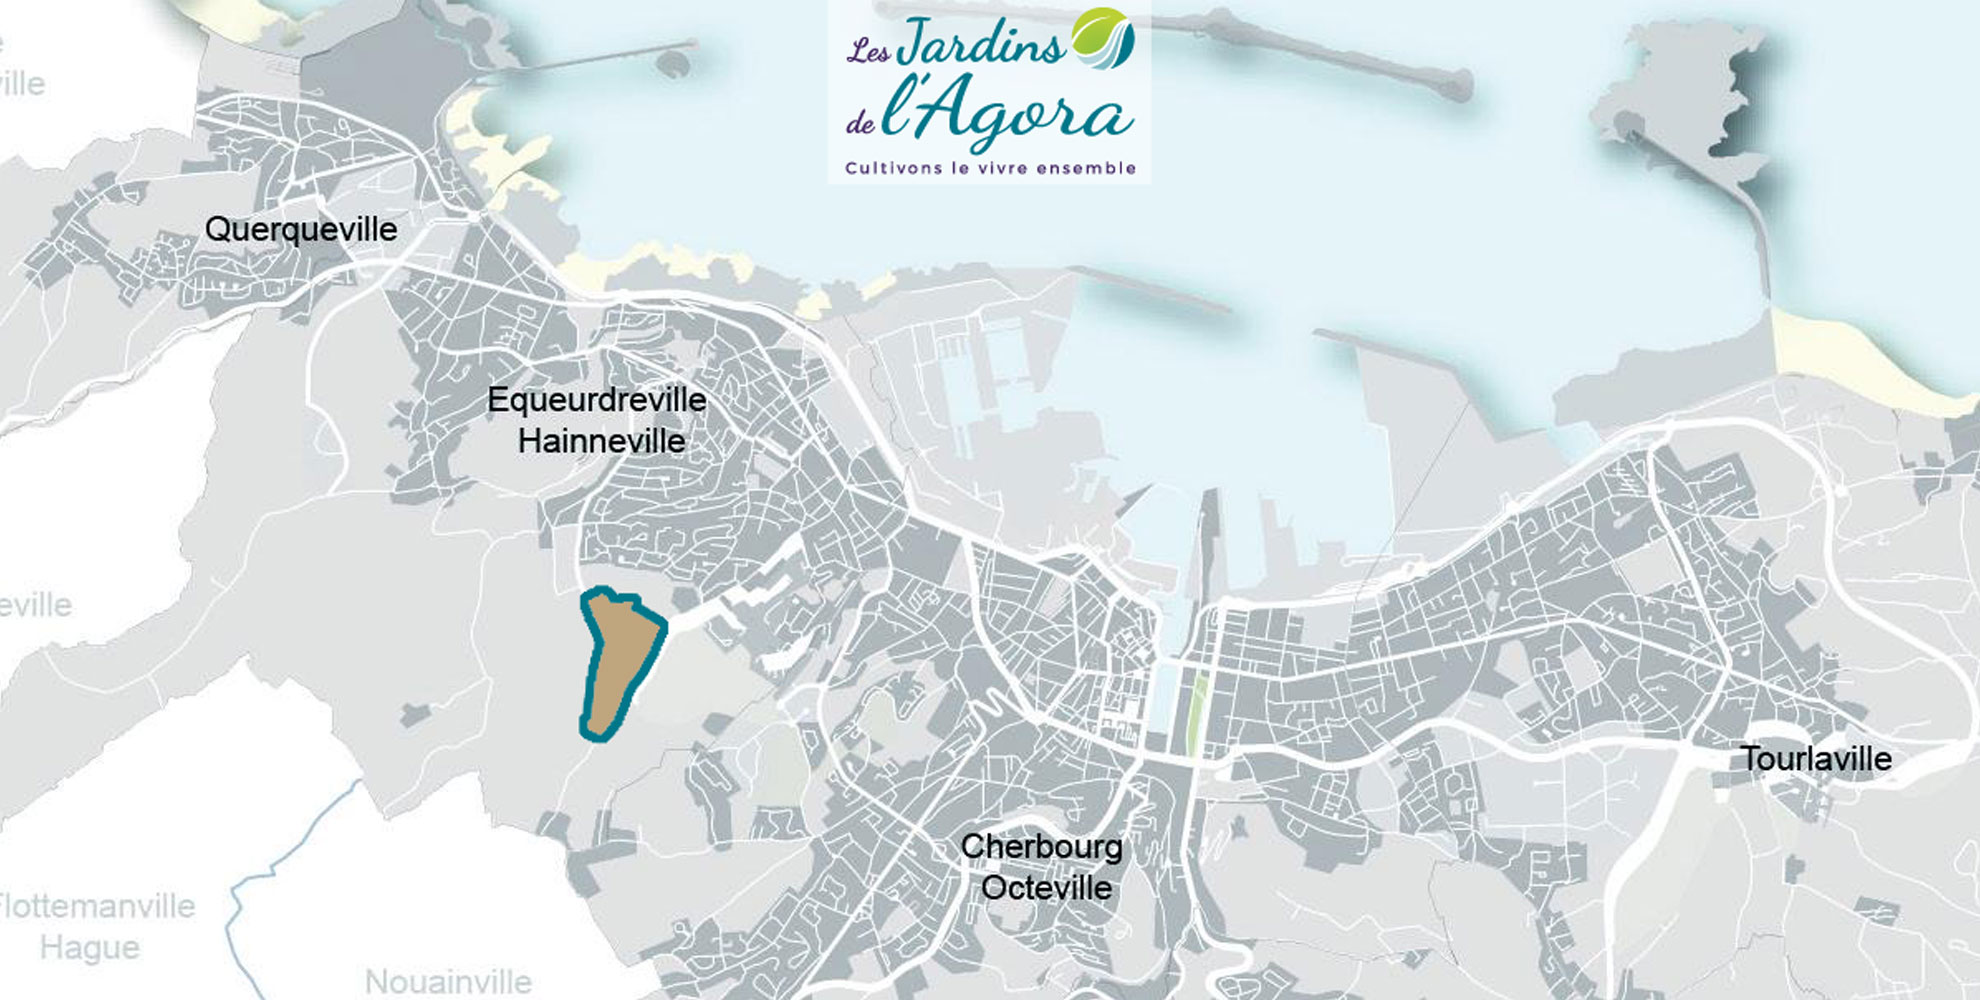 Normandie-amenagement-Quartier-Cherbourg-Les-jardins-de-l-agora